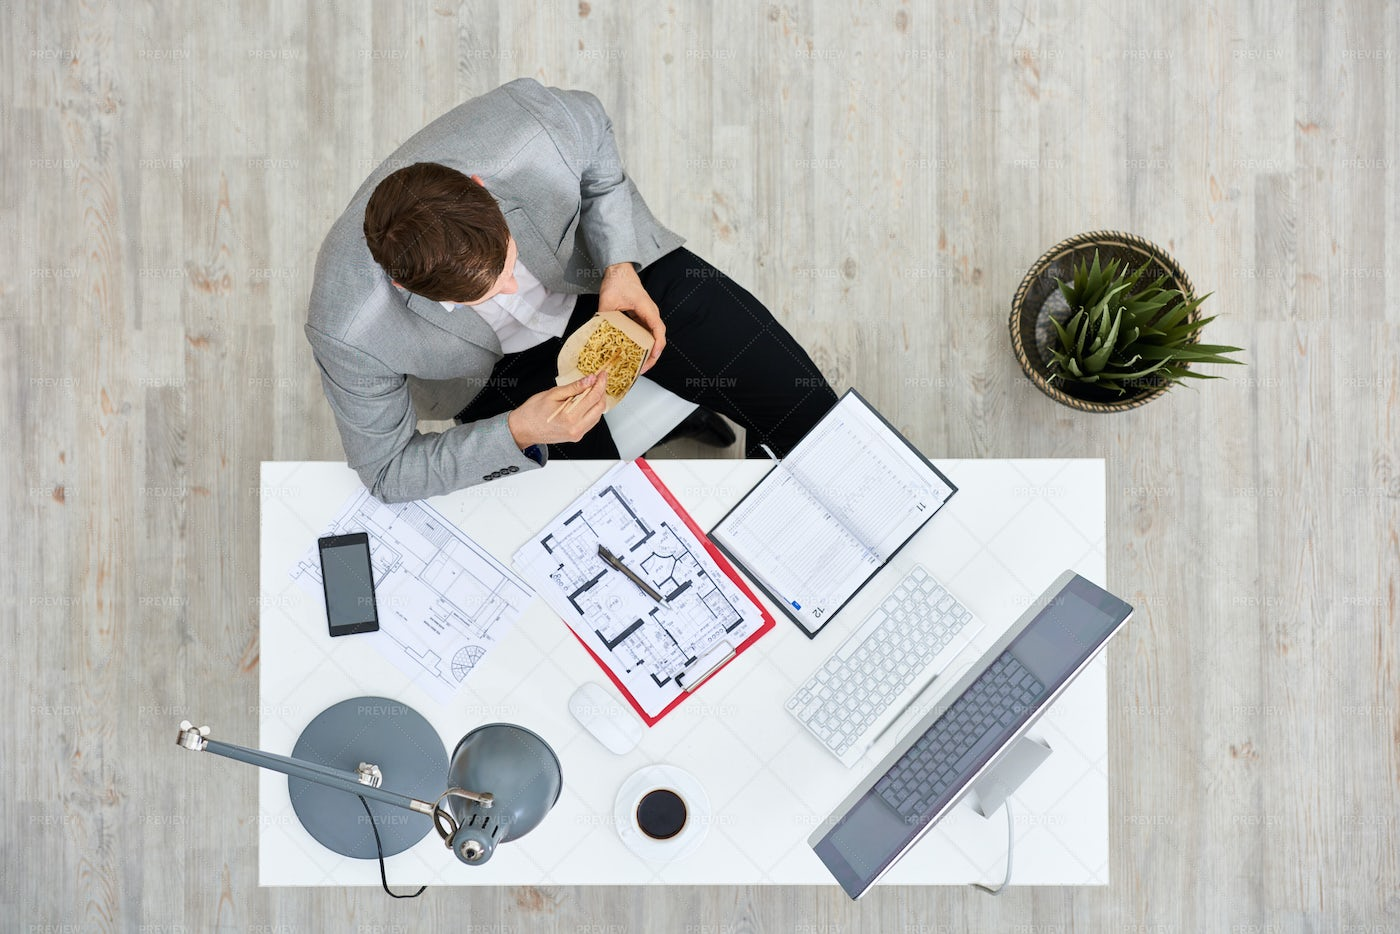 Lunchtime At Modern Office: Stock Photos